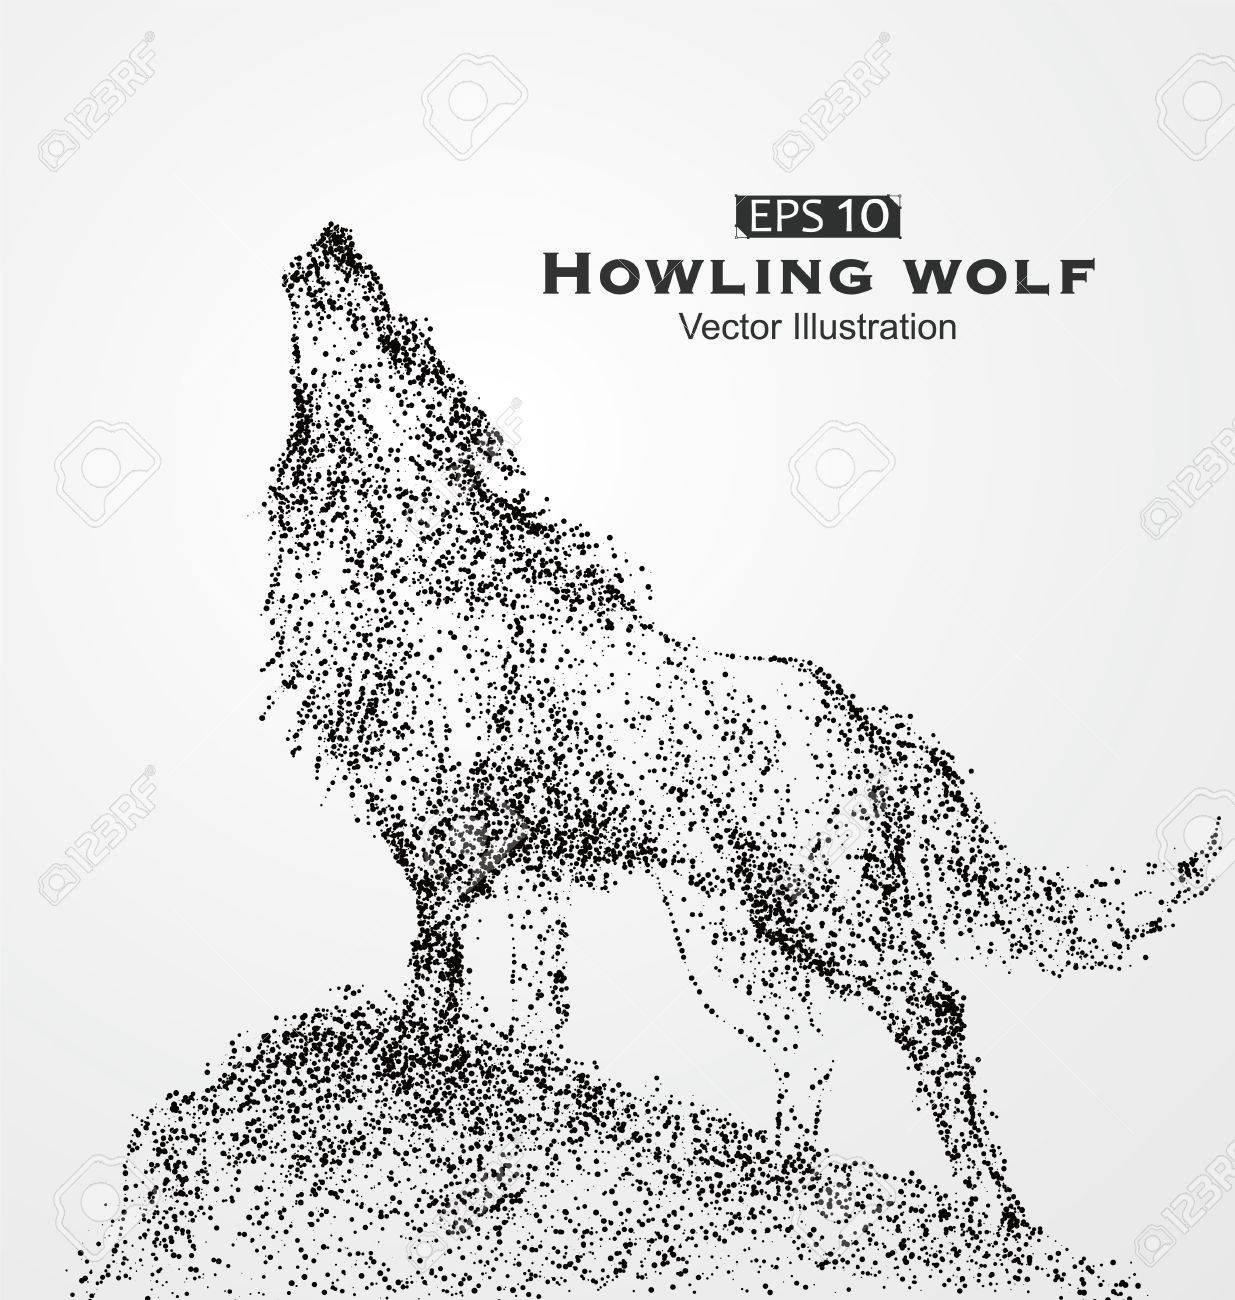 1235x1300 Howling Wolf, Particles, Vector Illustration. Royalty Free